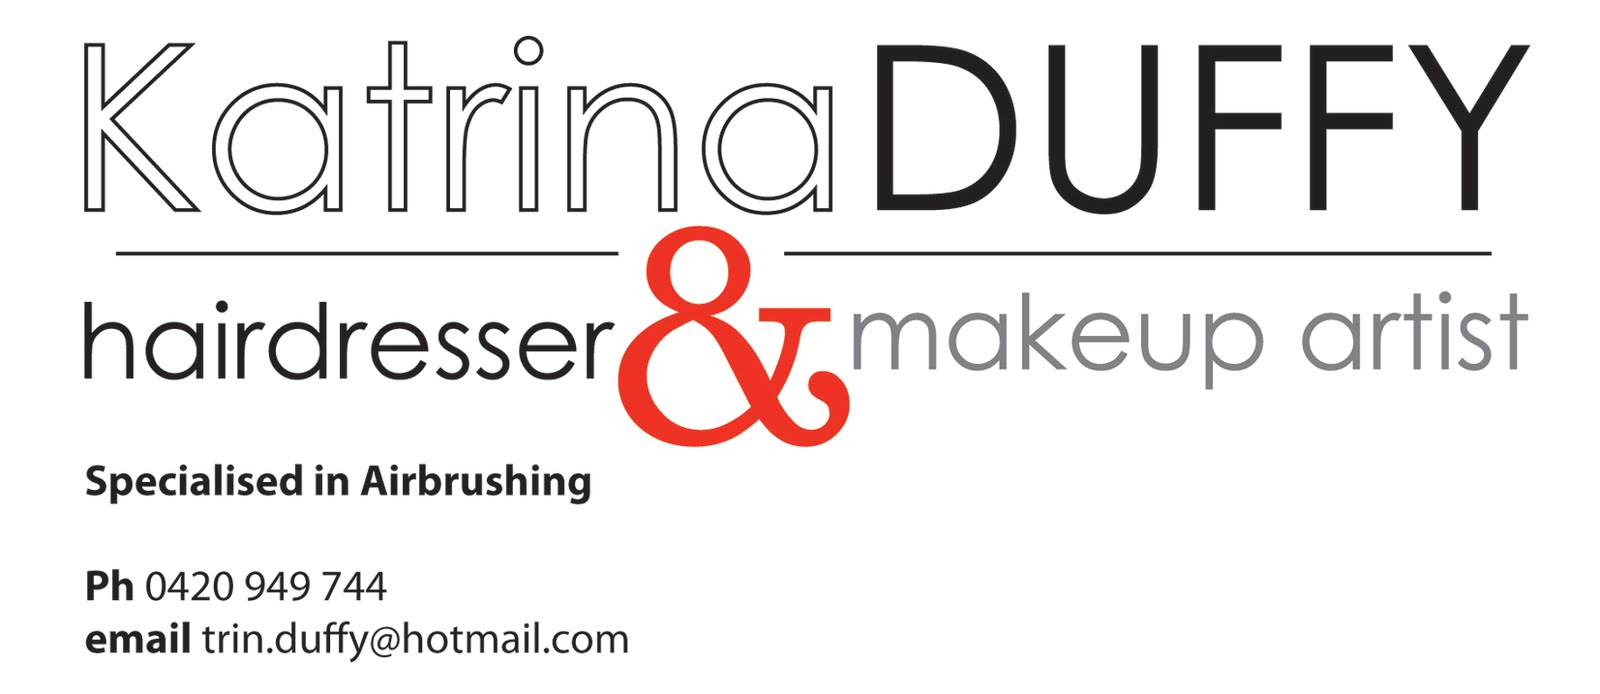 Katrina Duffy- Hairdresser & Makeup Artist